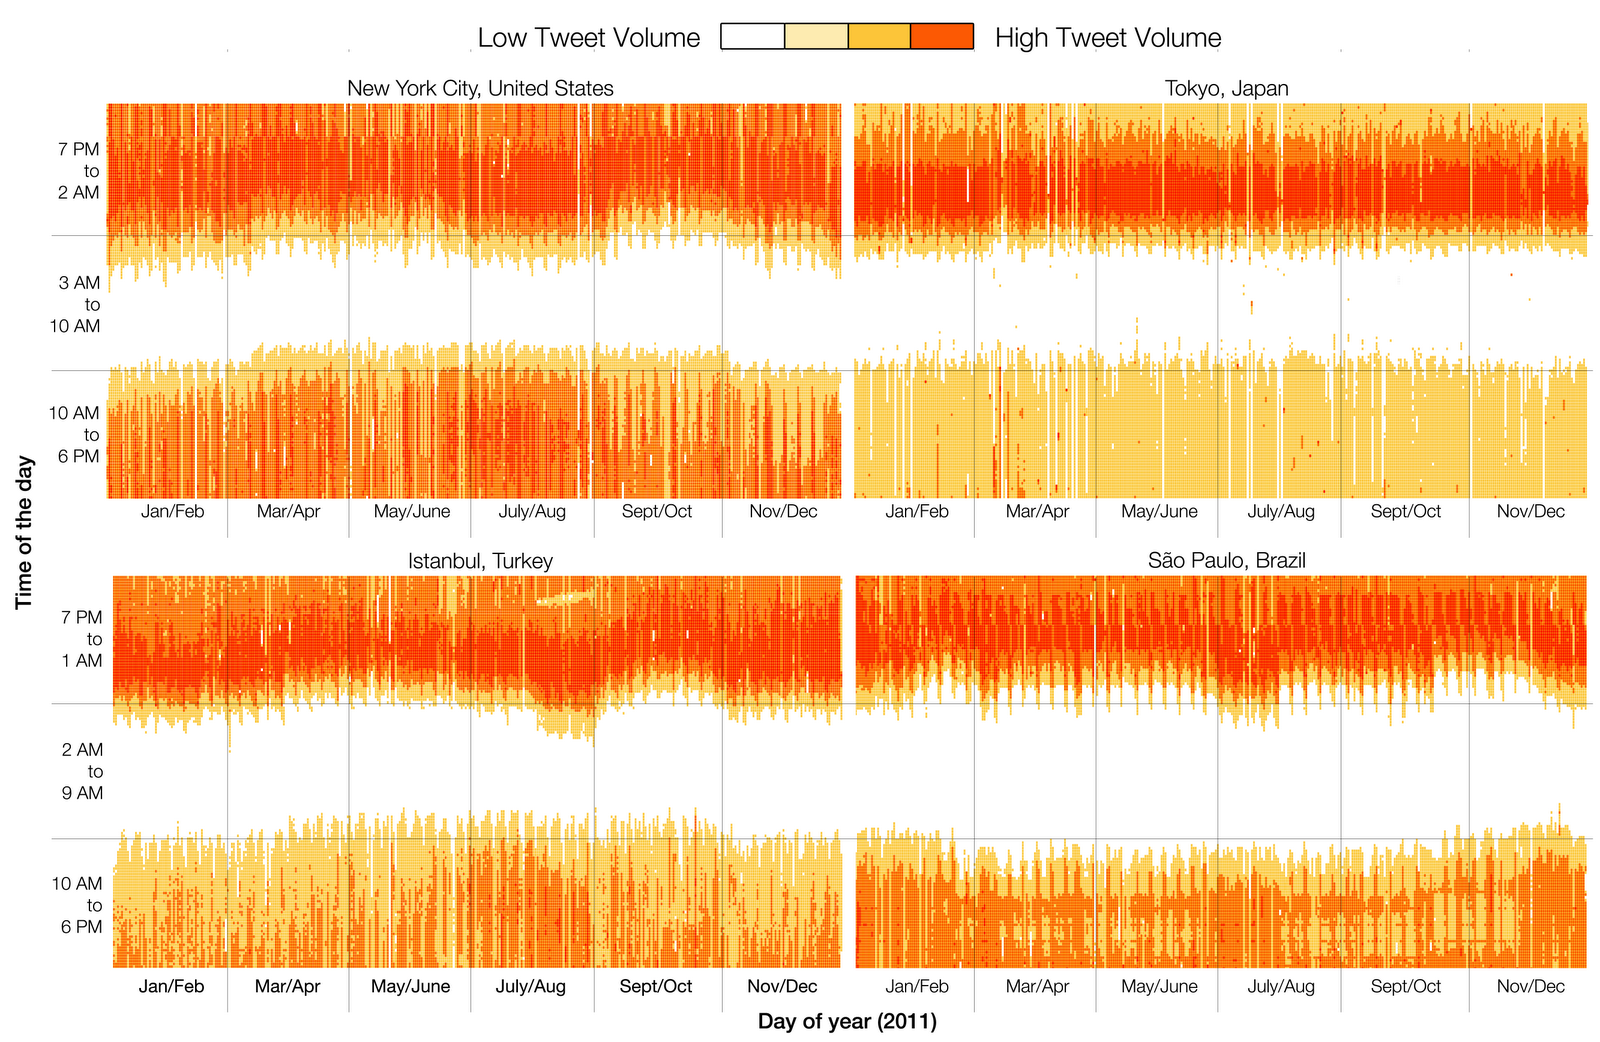 Different patterns of Twitter activity between the four cities [image courtesy Twitter].